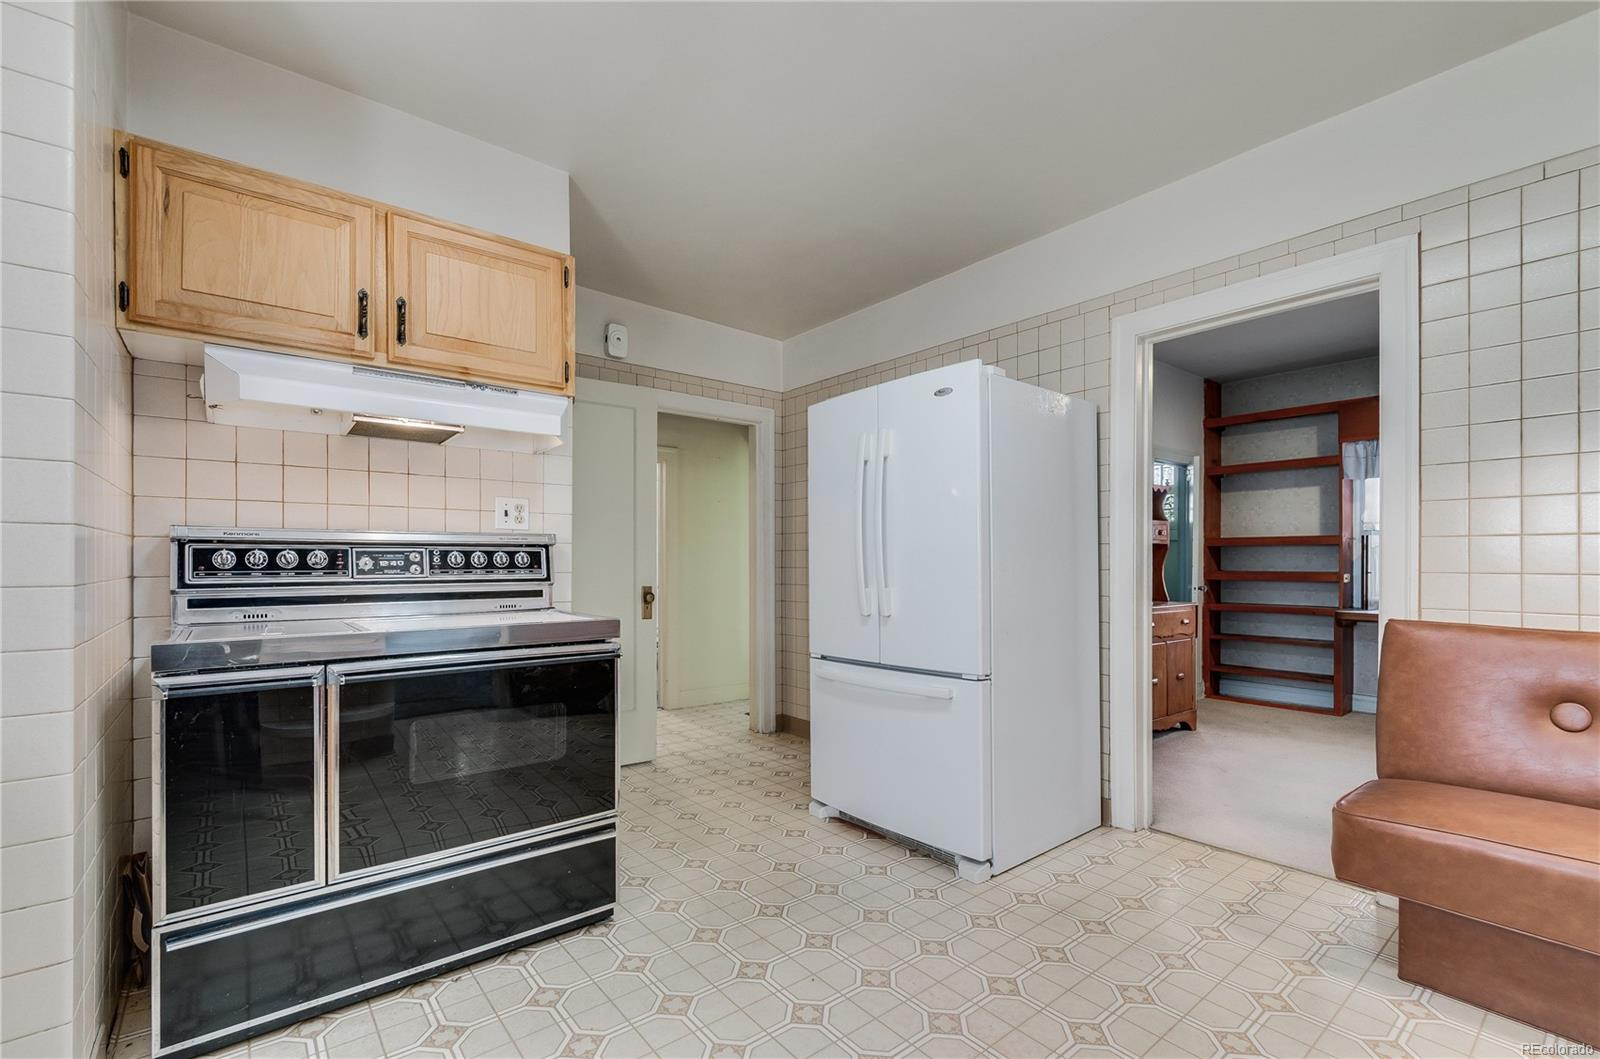 Plenty of room to make this home your own!